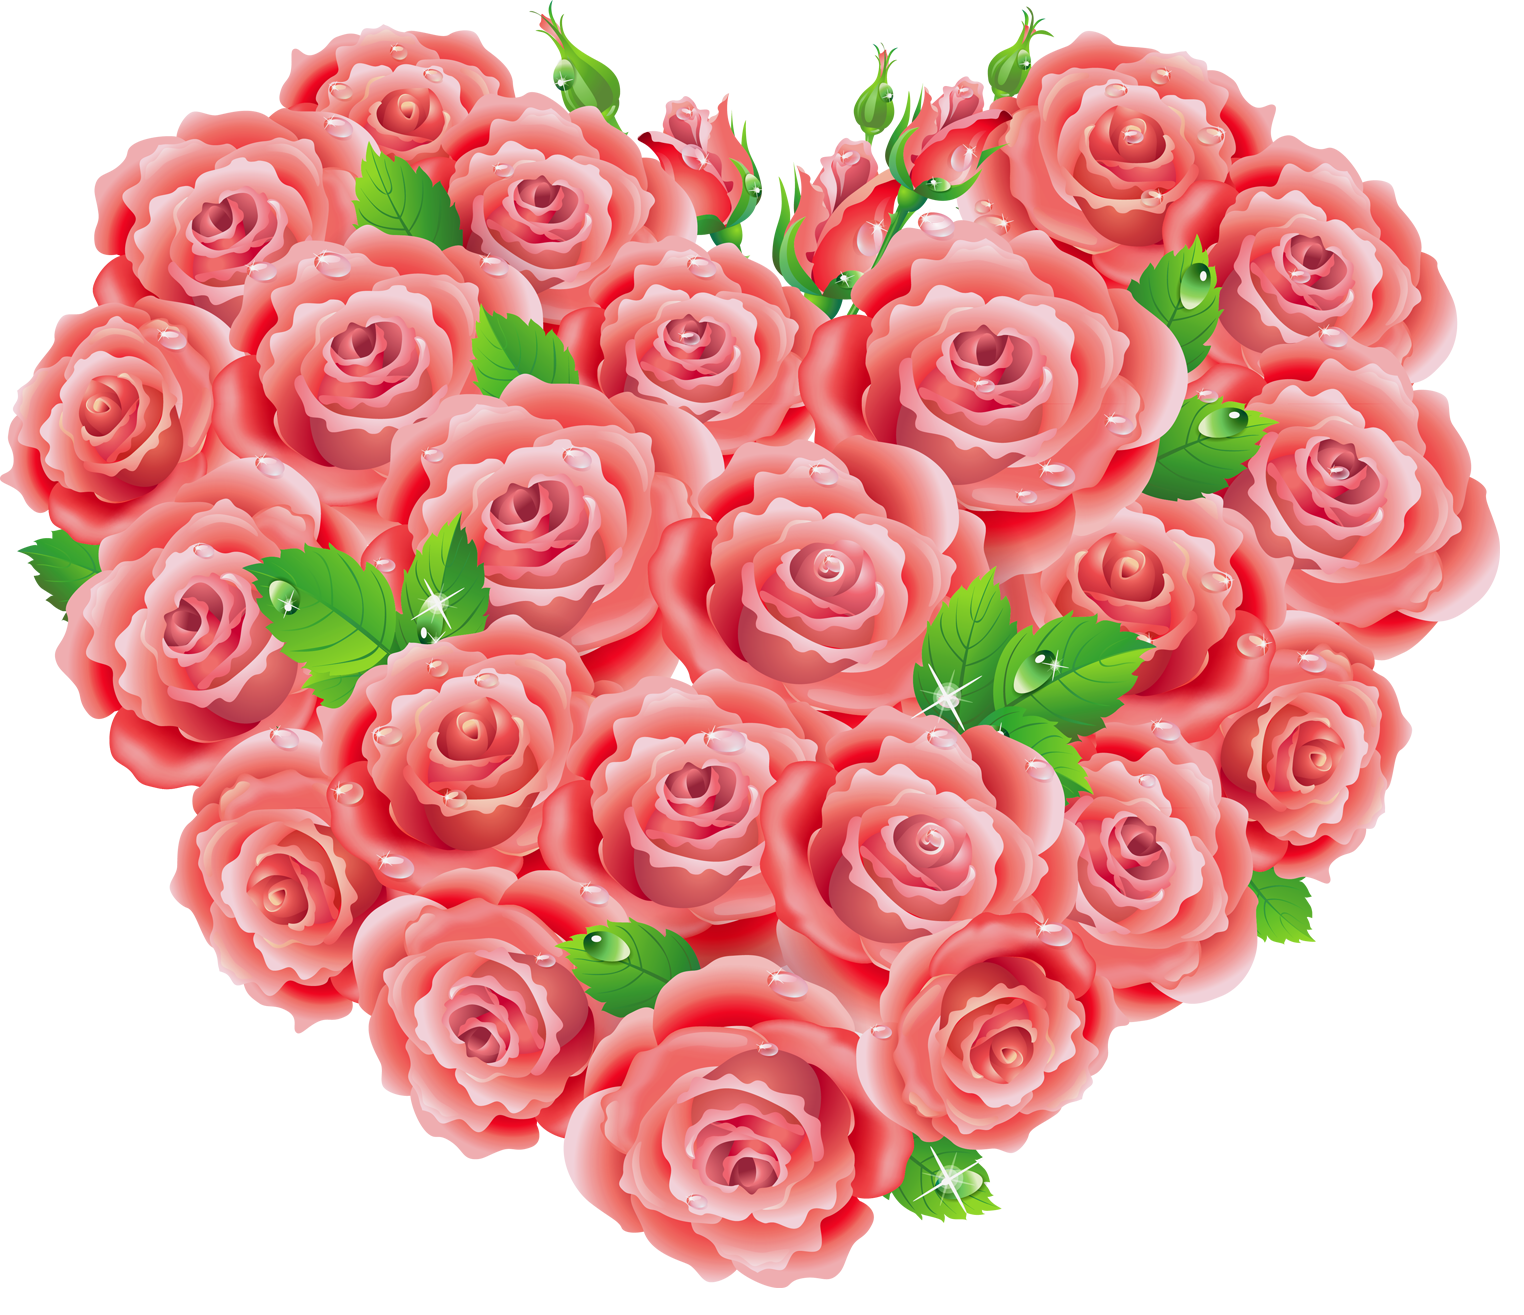 Red roses heart gallery. Clipart hearts rose